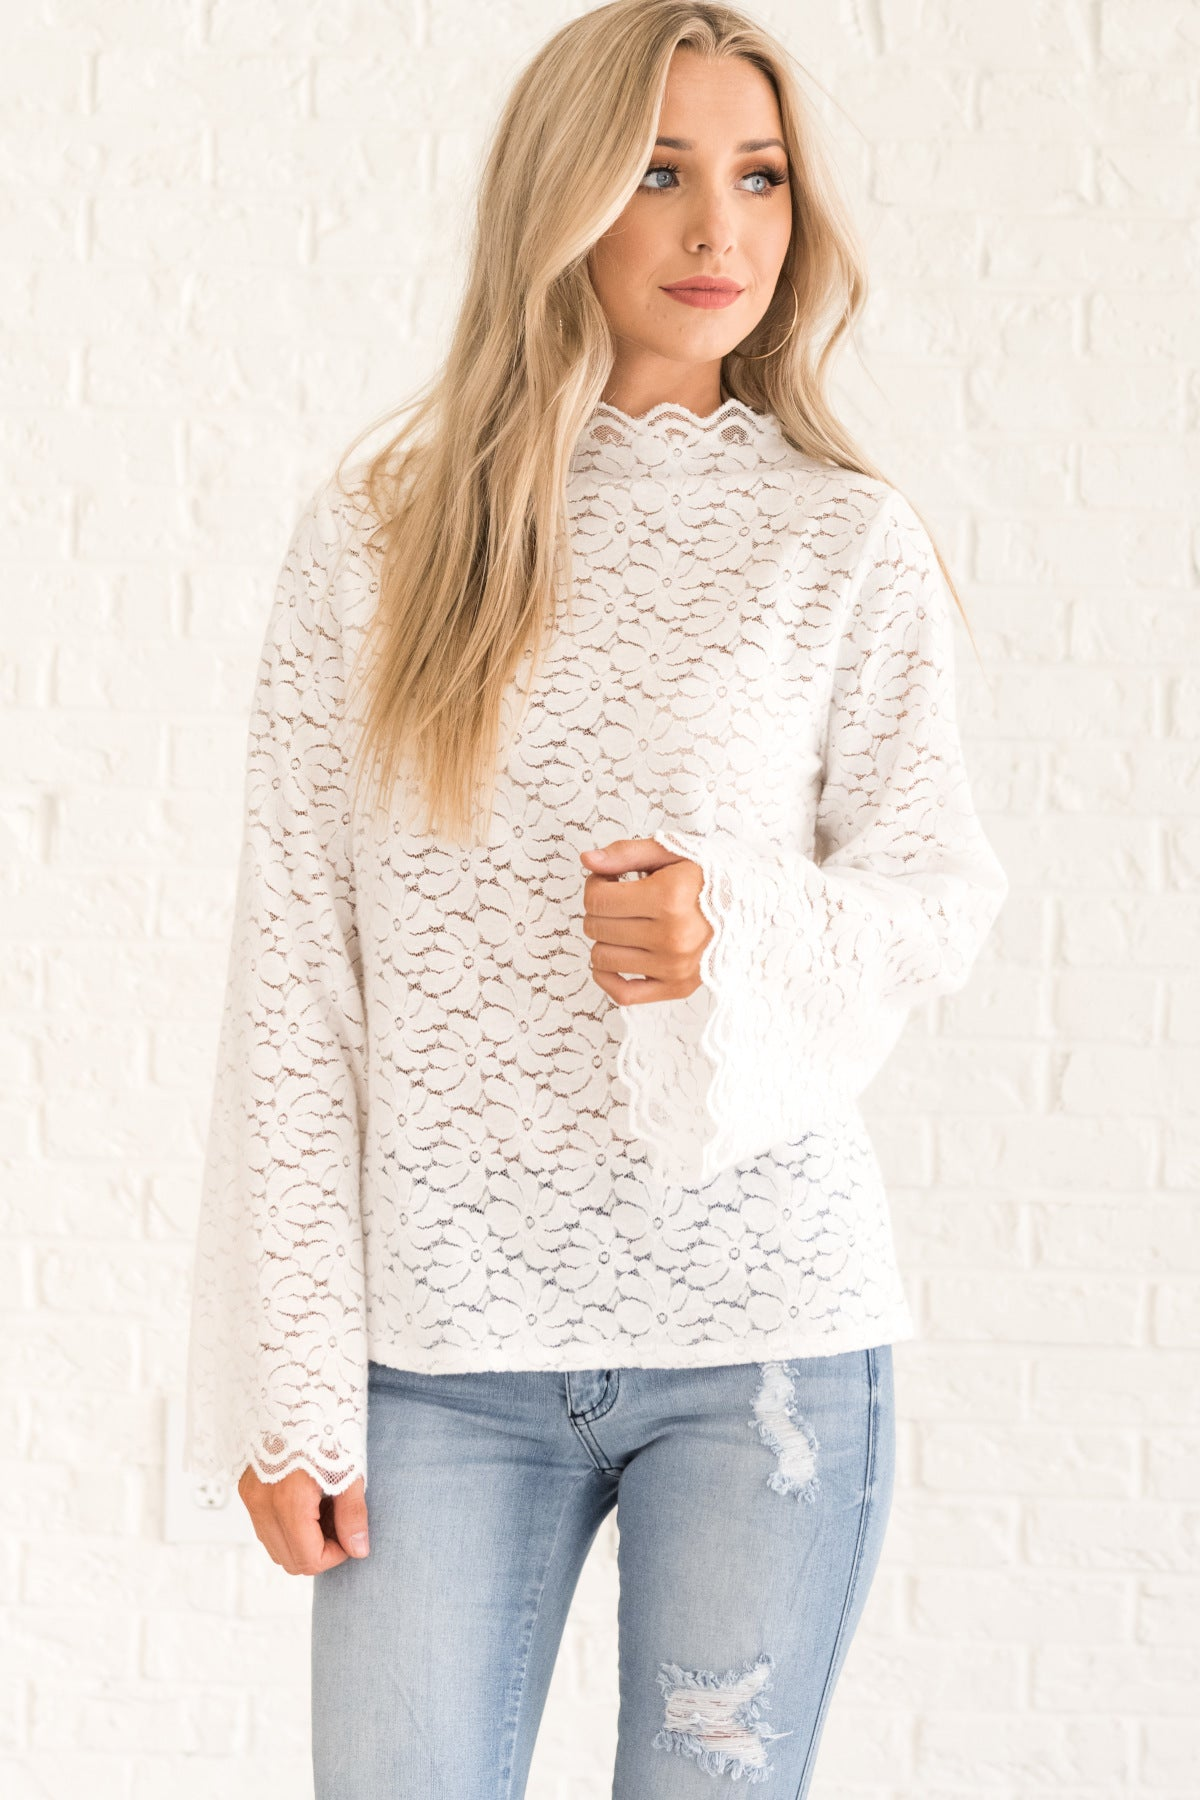 658facf241b5e2 White Lace Long Sleeve Blouses from Affordable Online Boutique